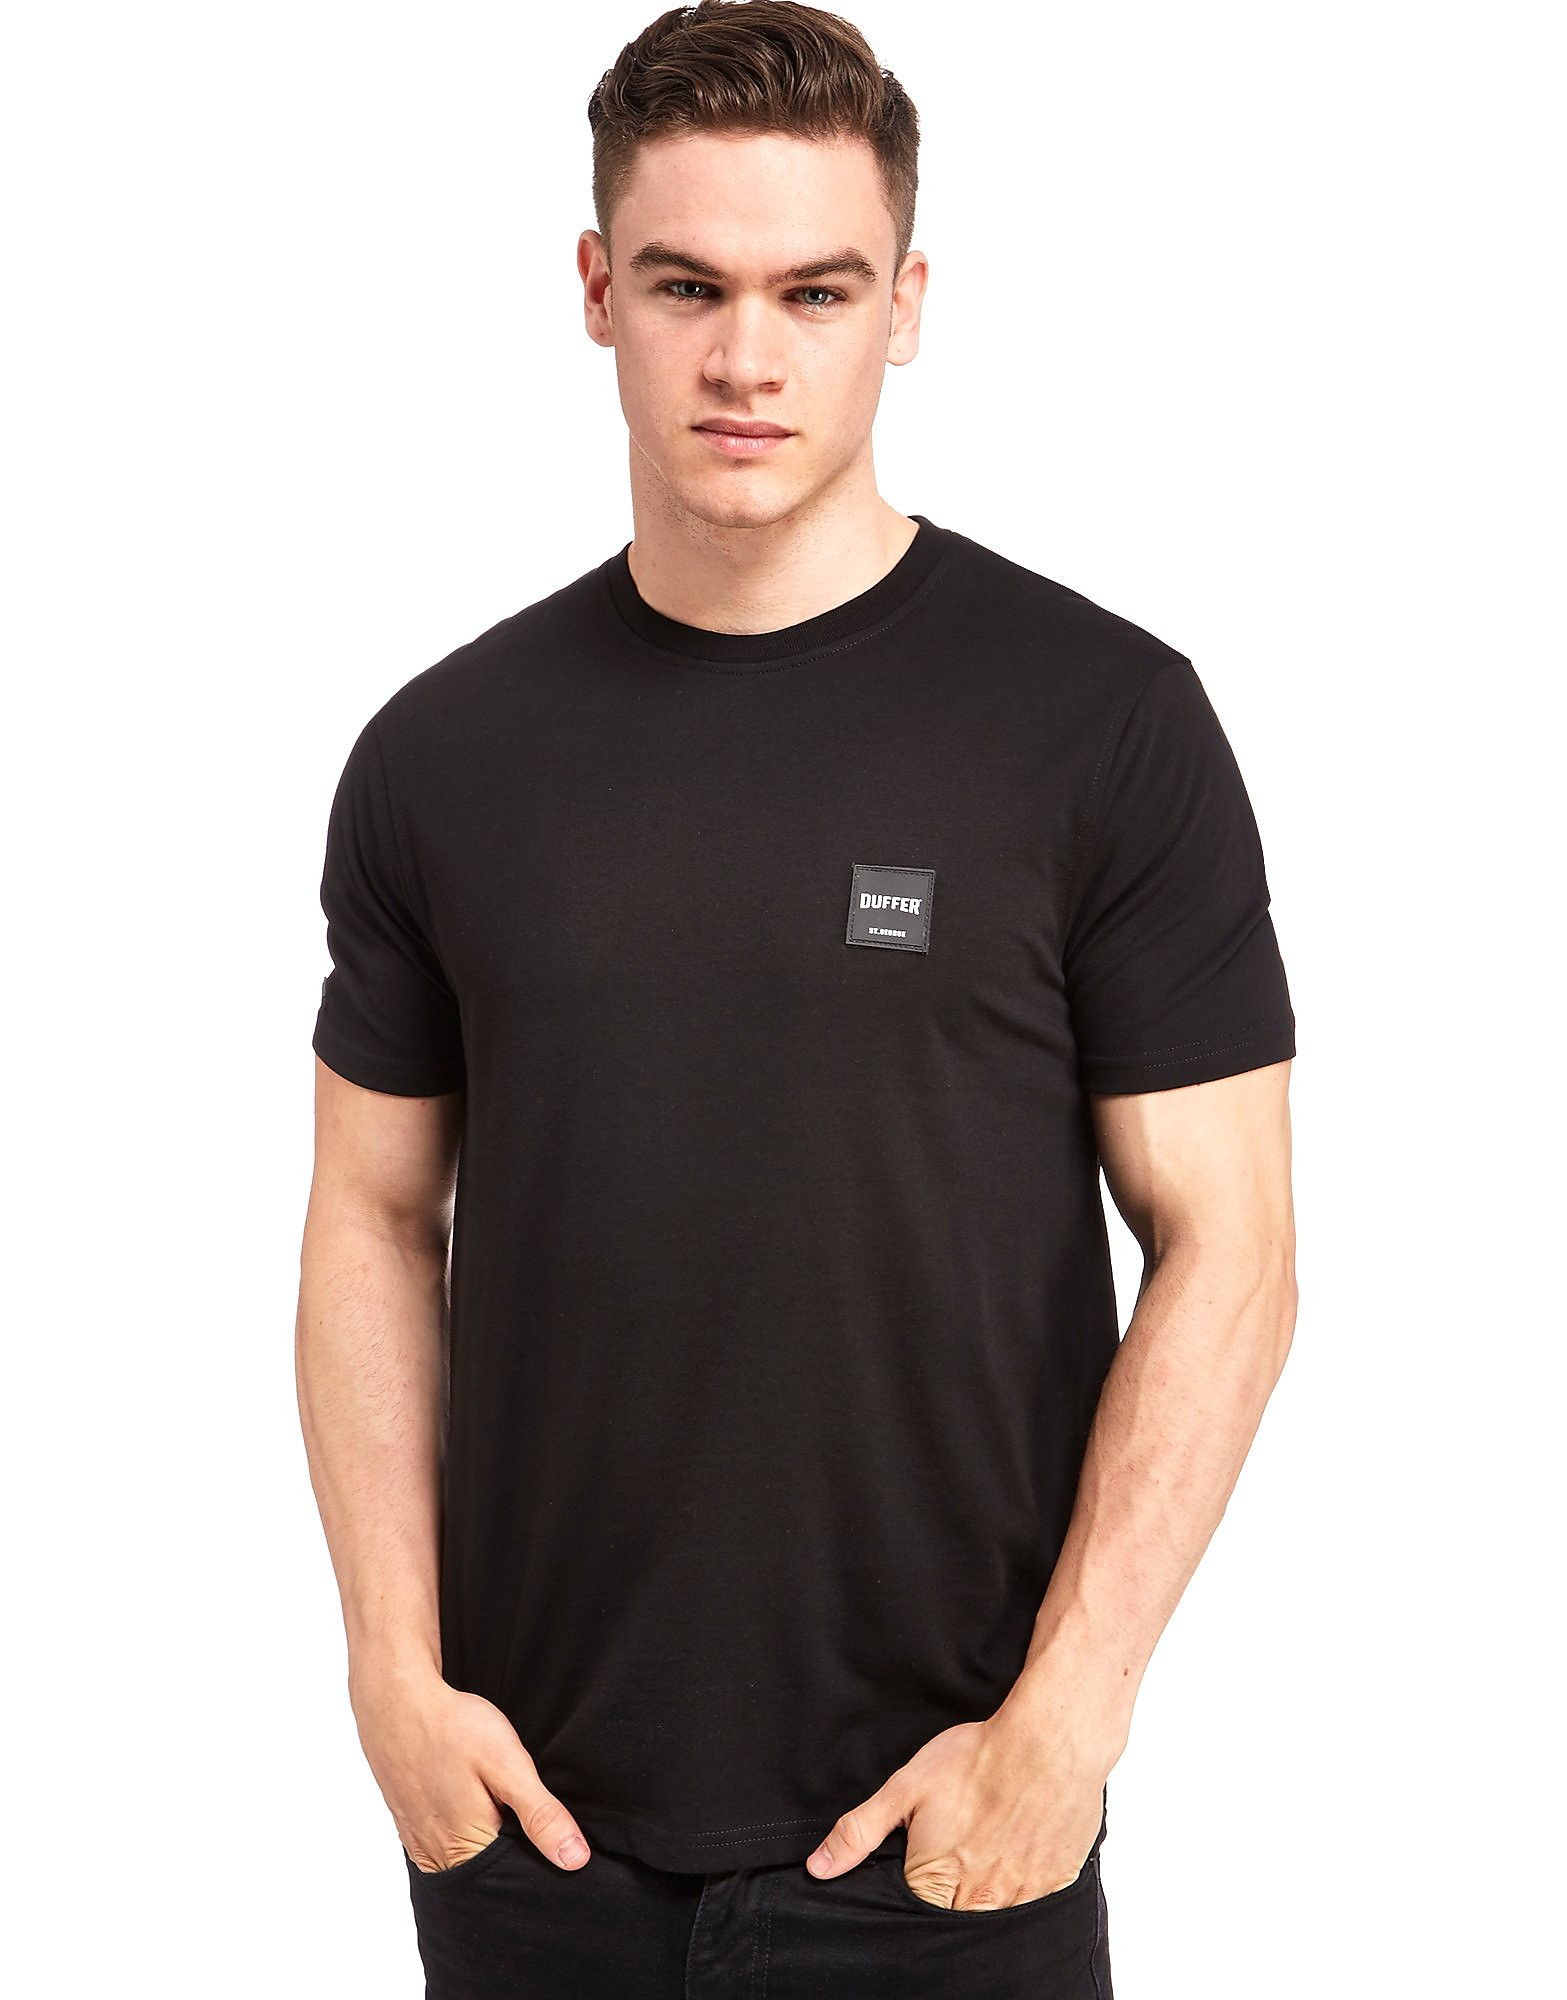 Duffer of St George Black Label Ankaris T-Shirt